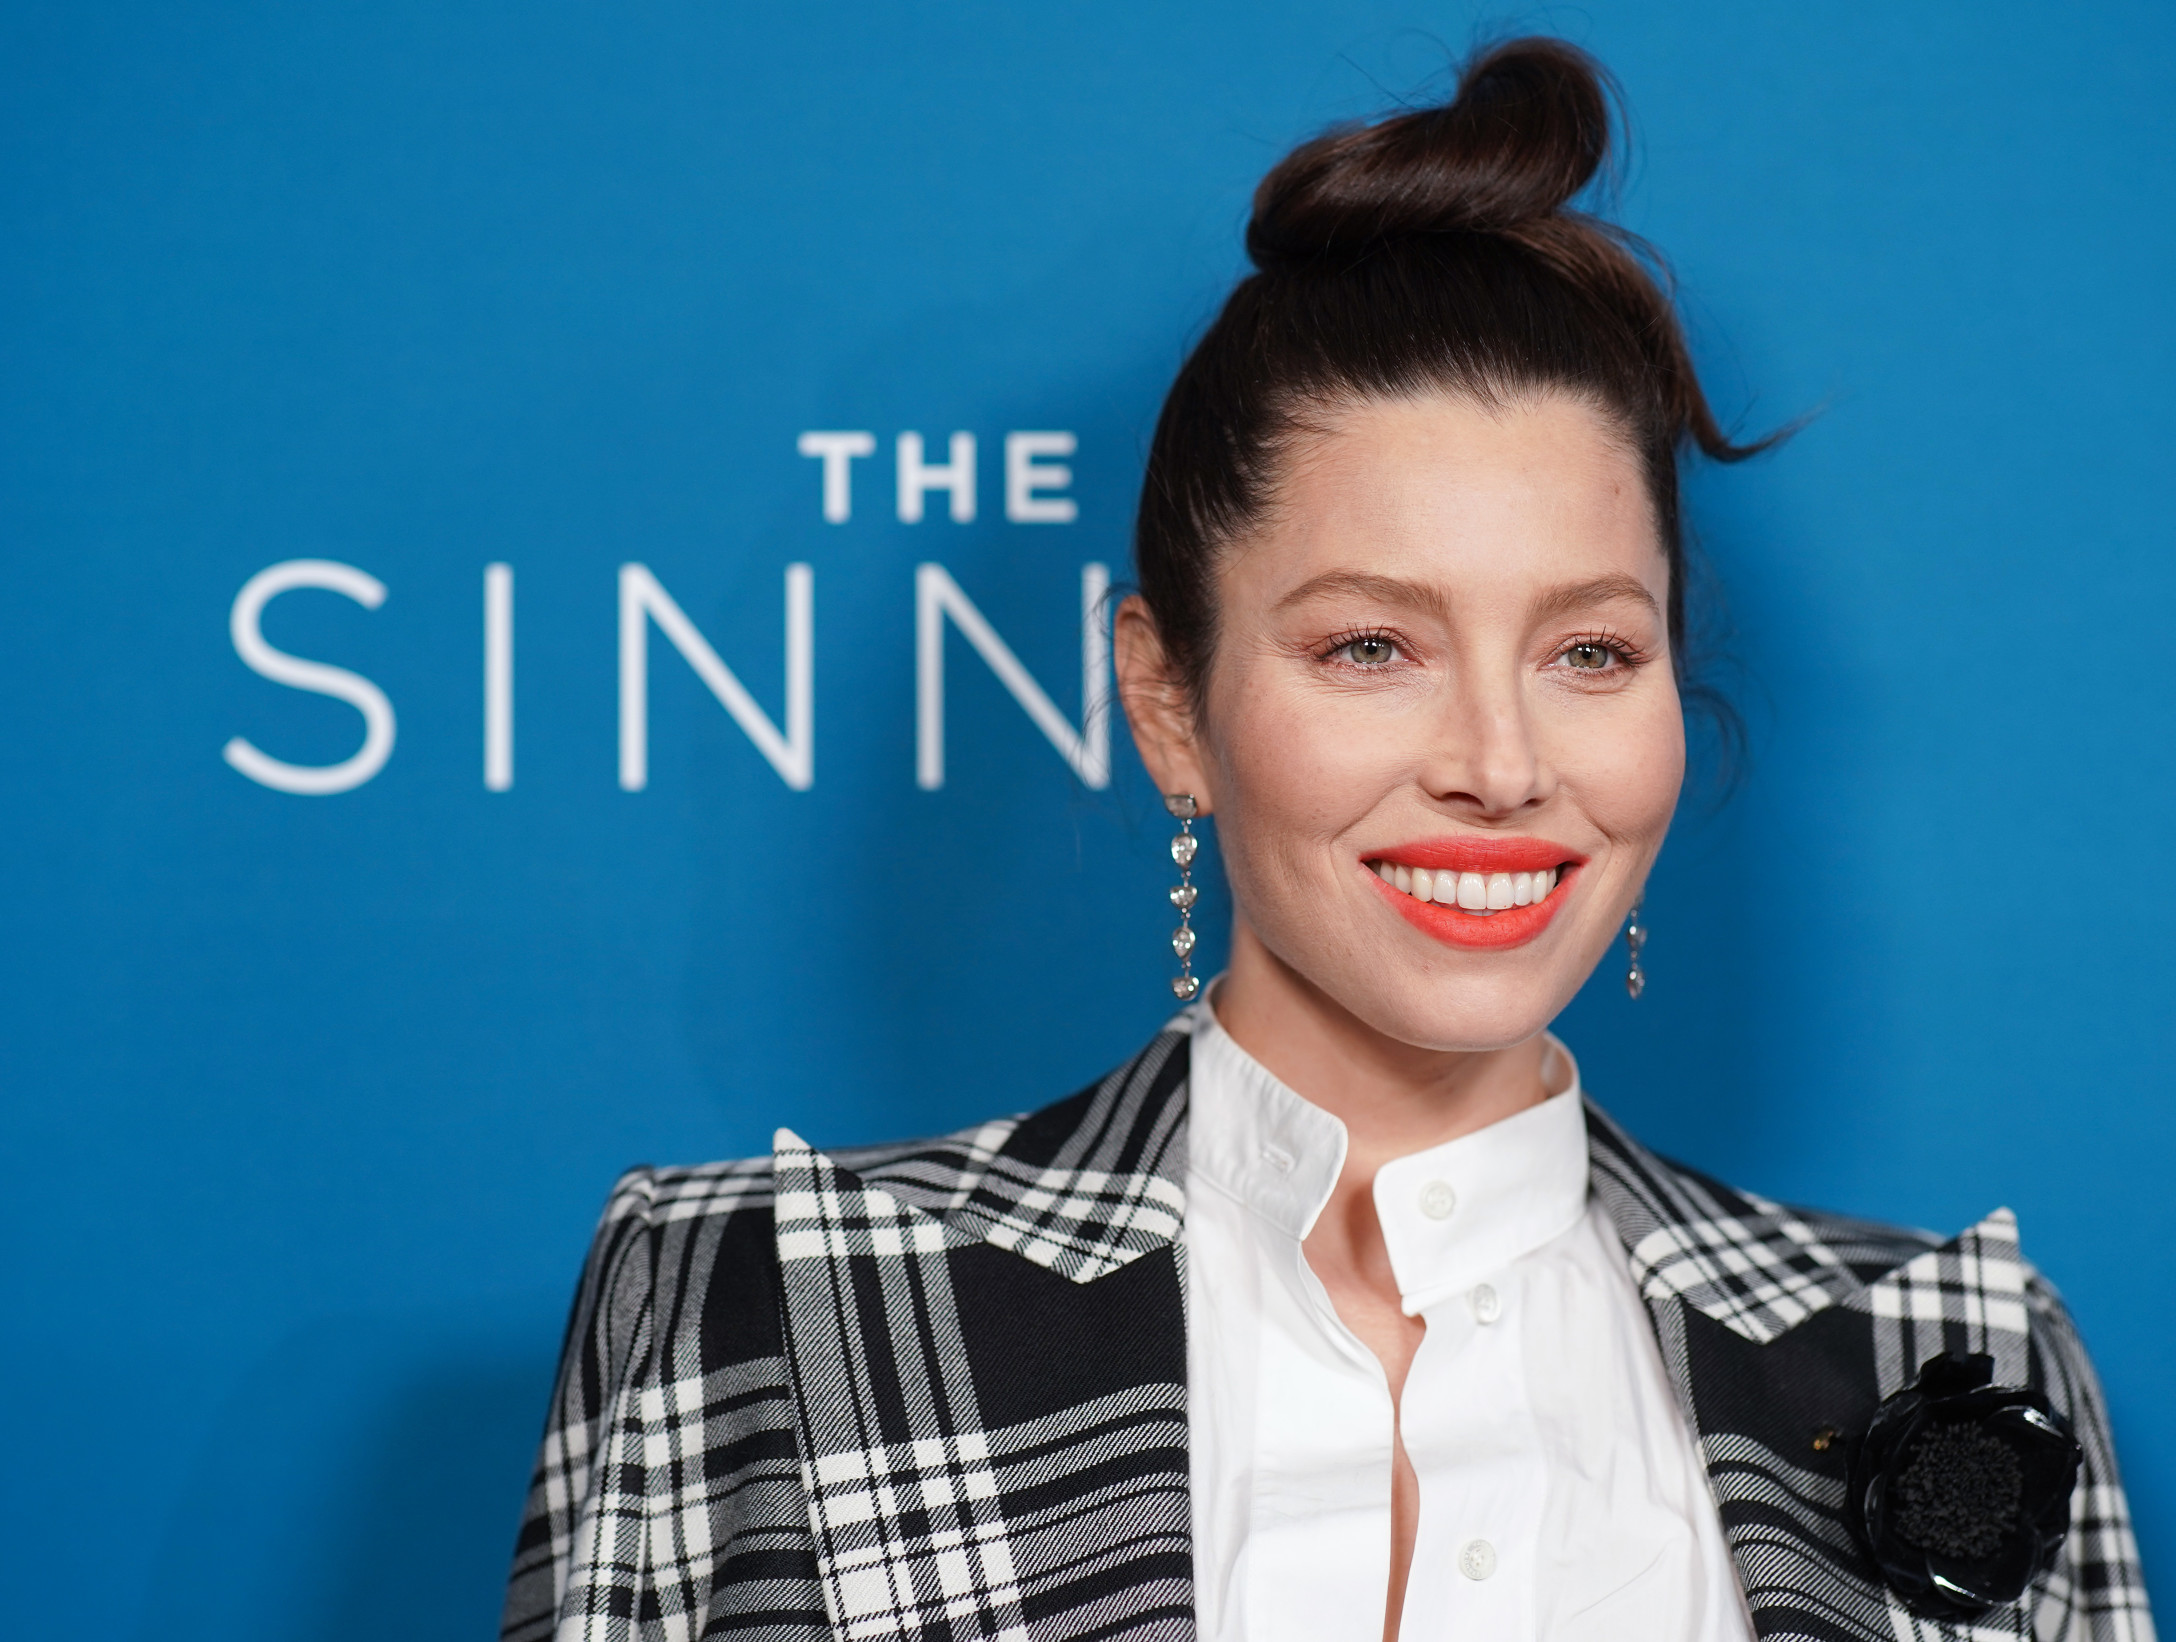 Jessica Biel Had To 'Start From Scratch' & Relearn the Baby Basics With Her Second Son